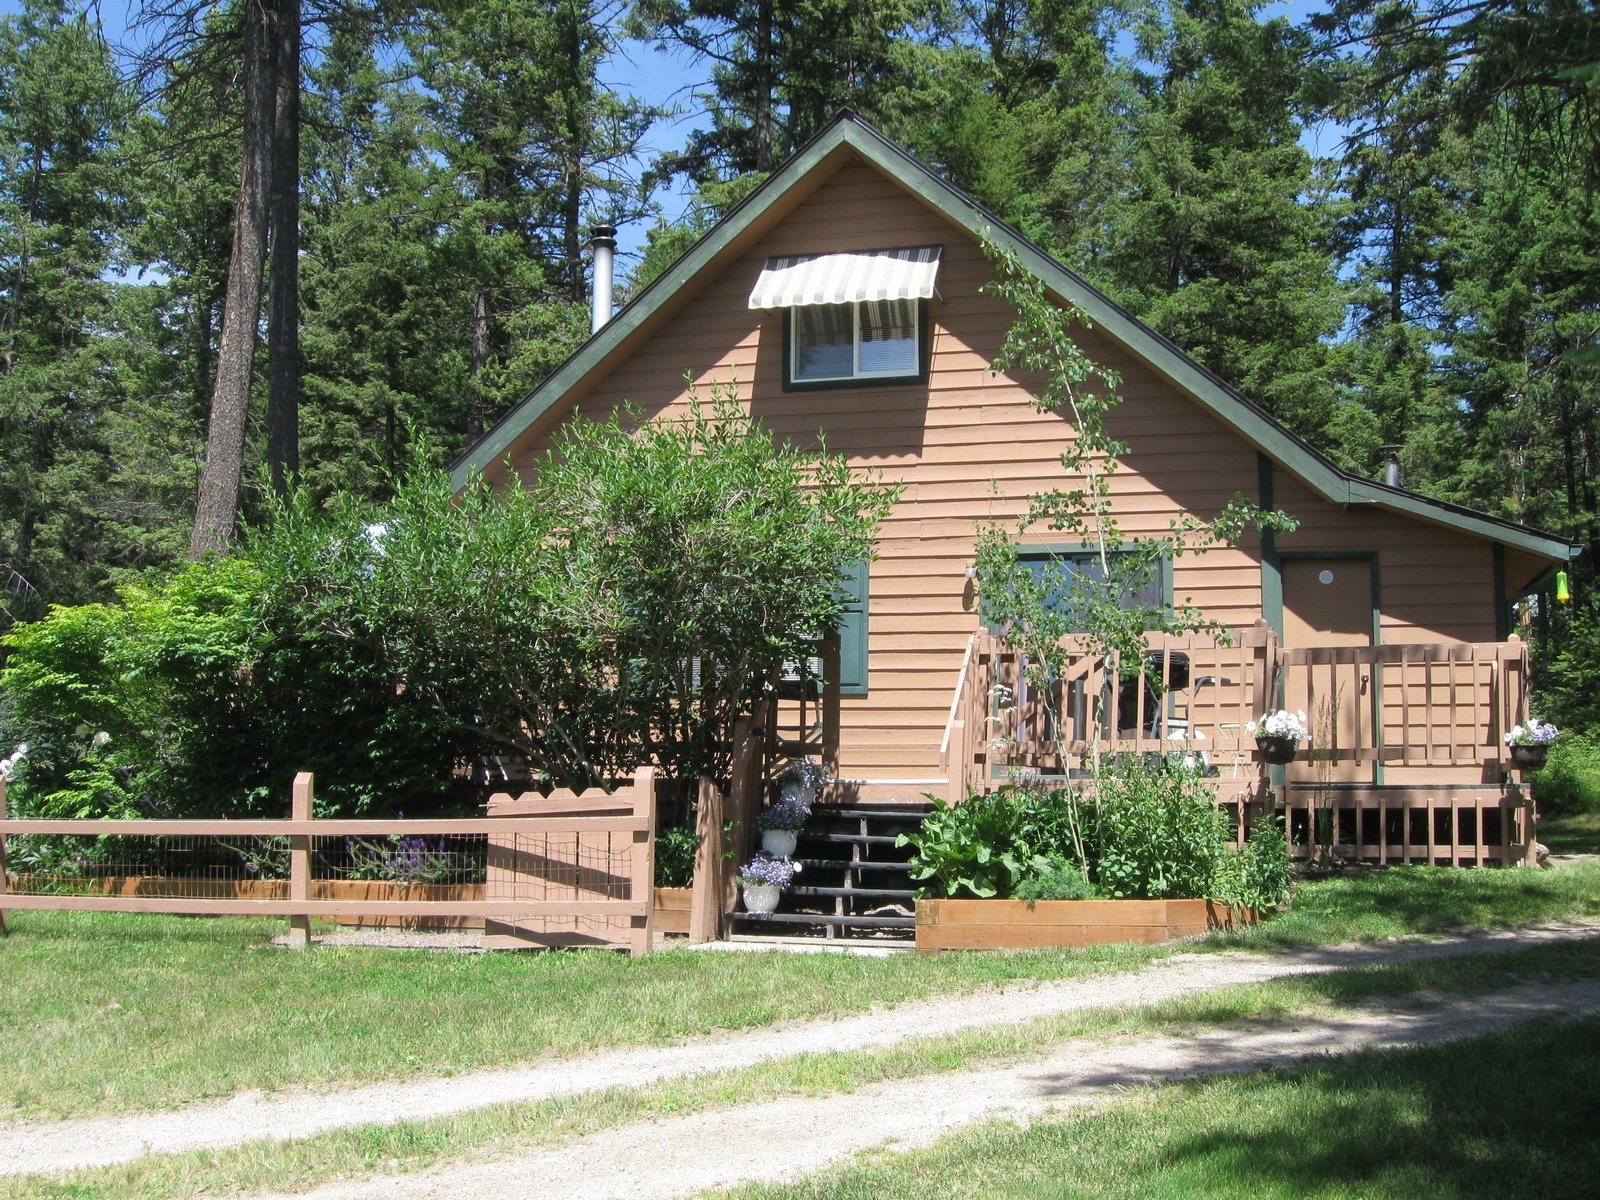 Single Family Home for Sale at 347 Deer Trl , Whitefish, MT 59937 347 Deer Trl Whitefish, Montana, 59937 United States